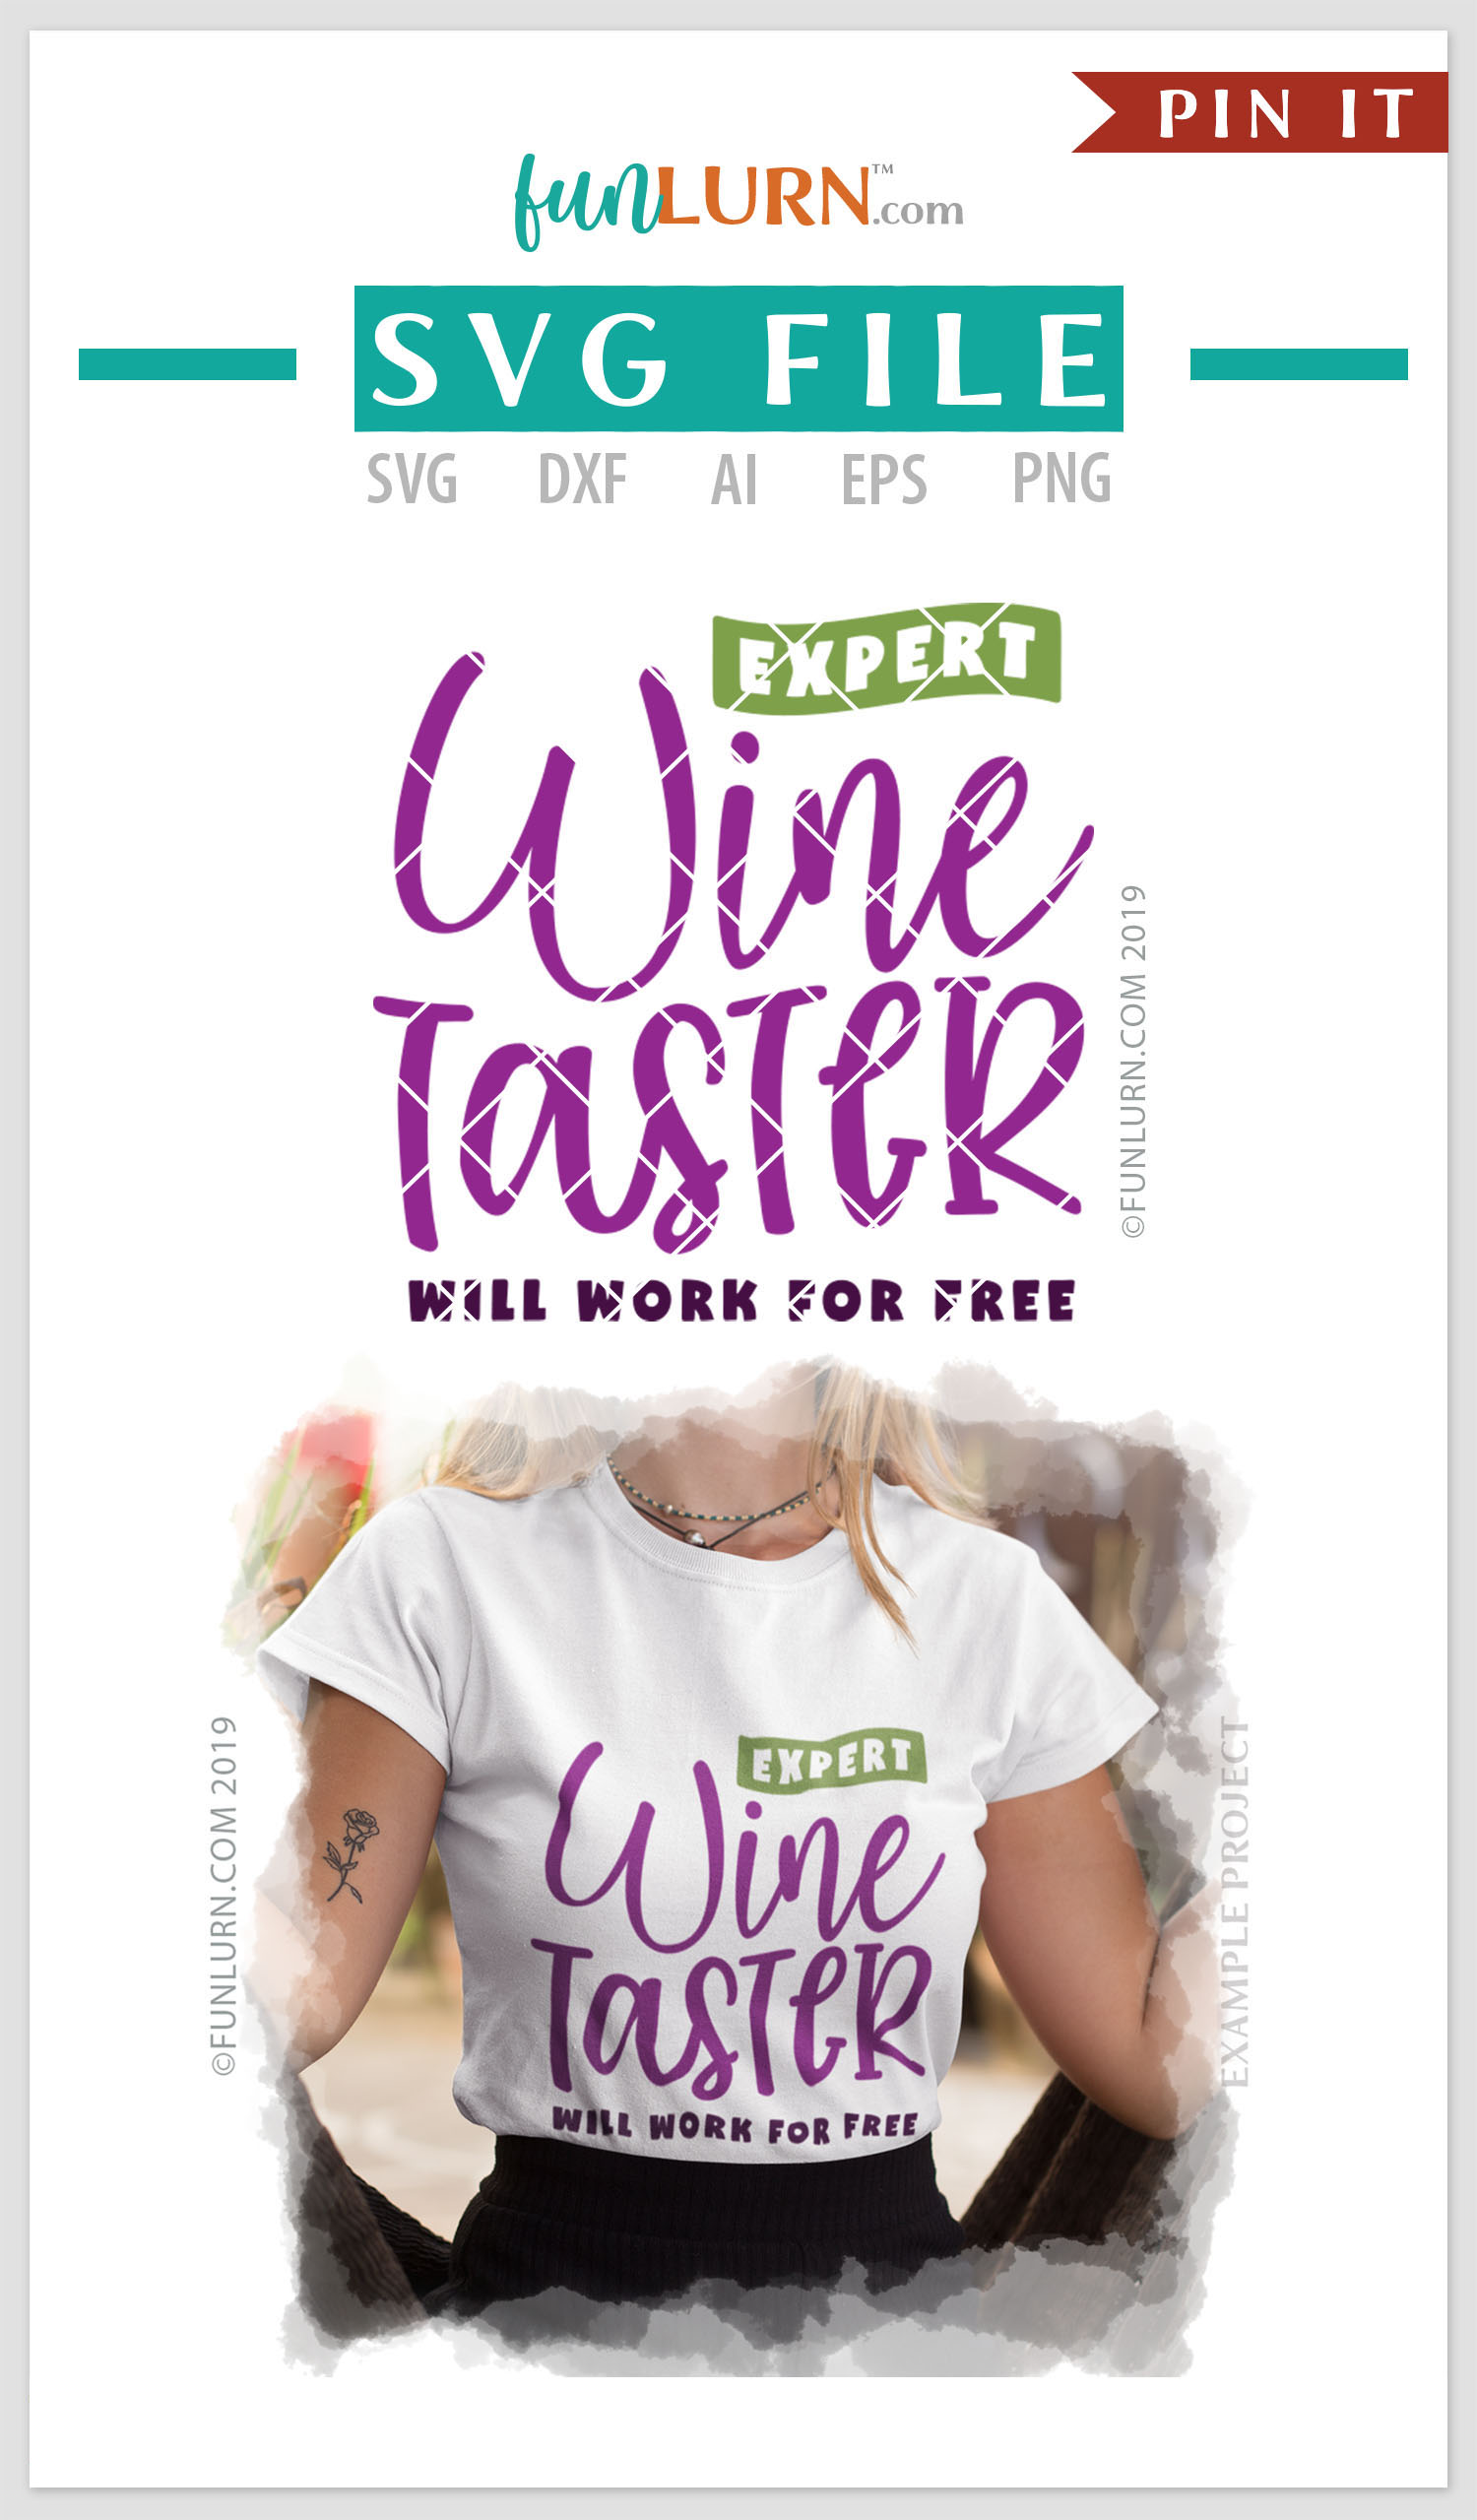 Expert Wine Taster Will Work For Free SVG Cut File example image 4